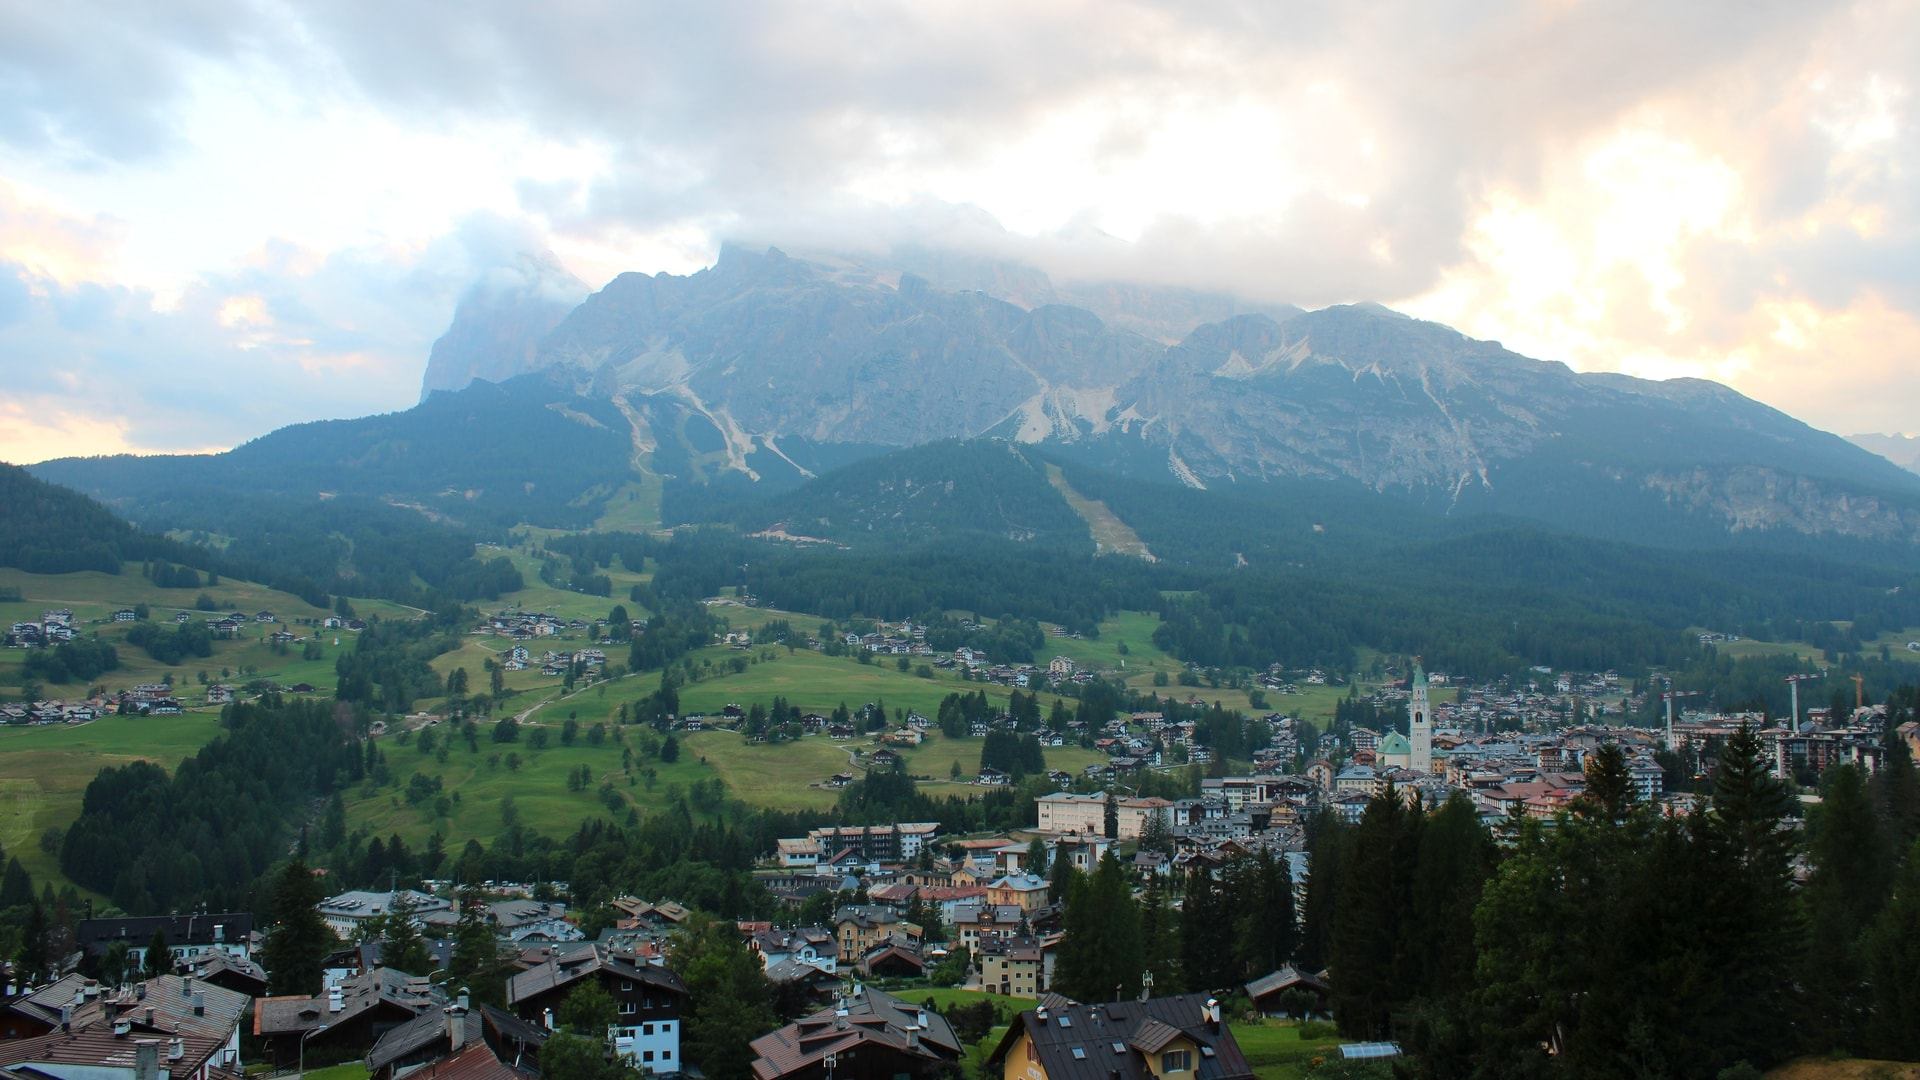 Webcam su Cortina d'Ampezzo